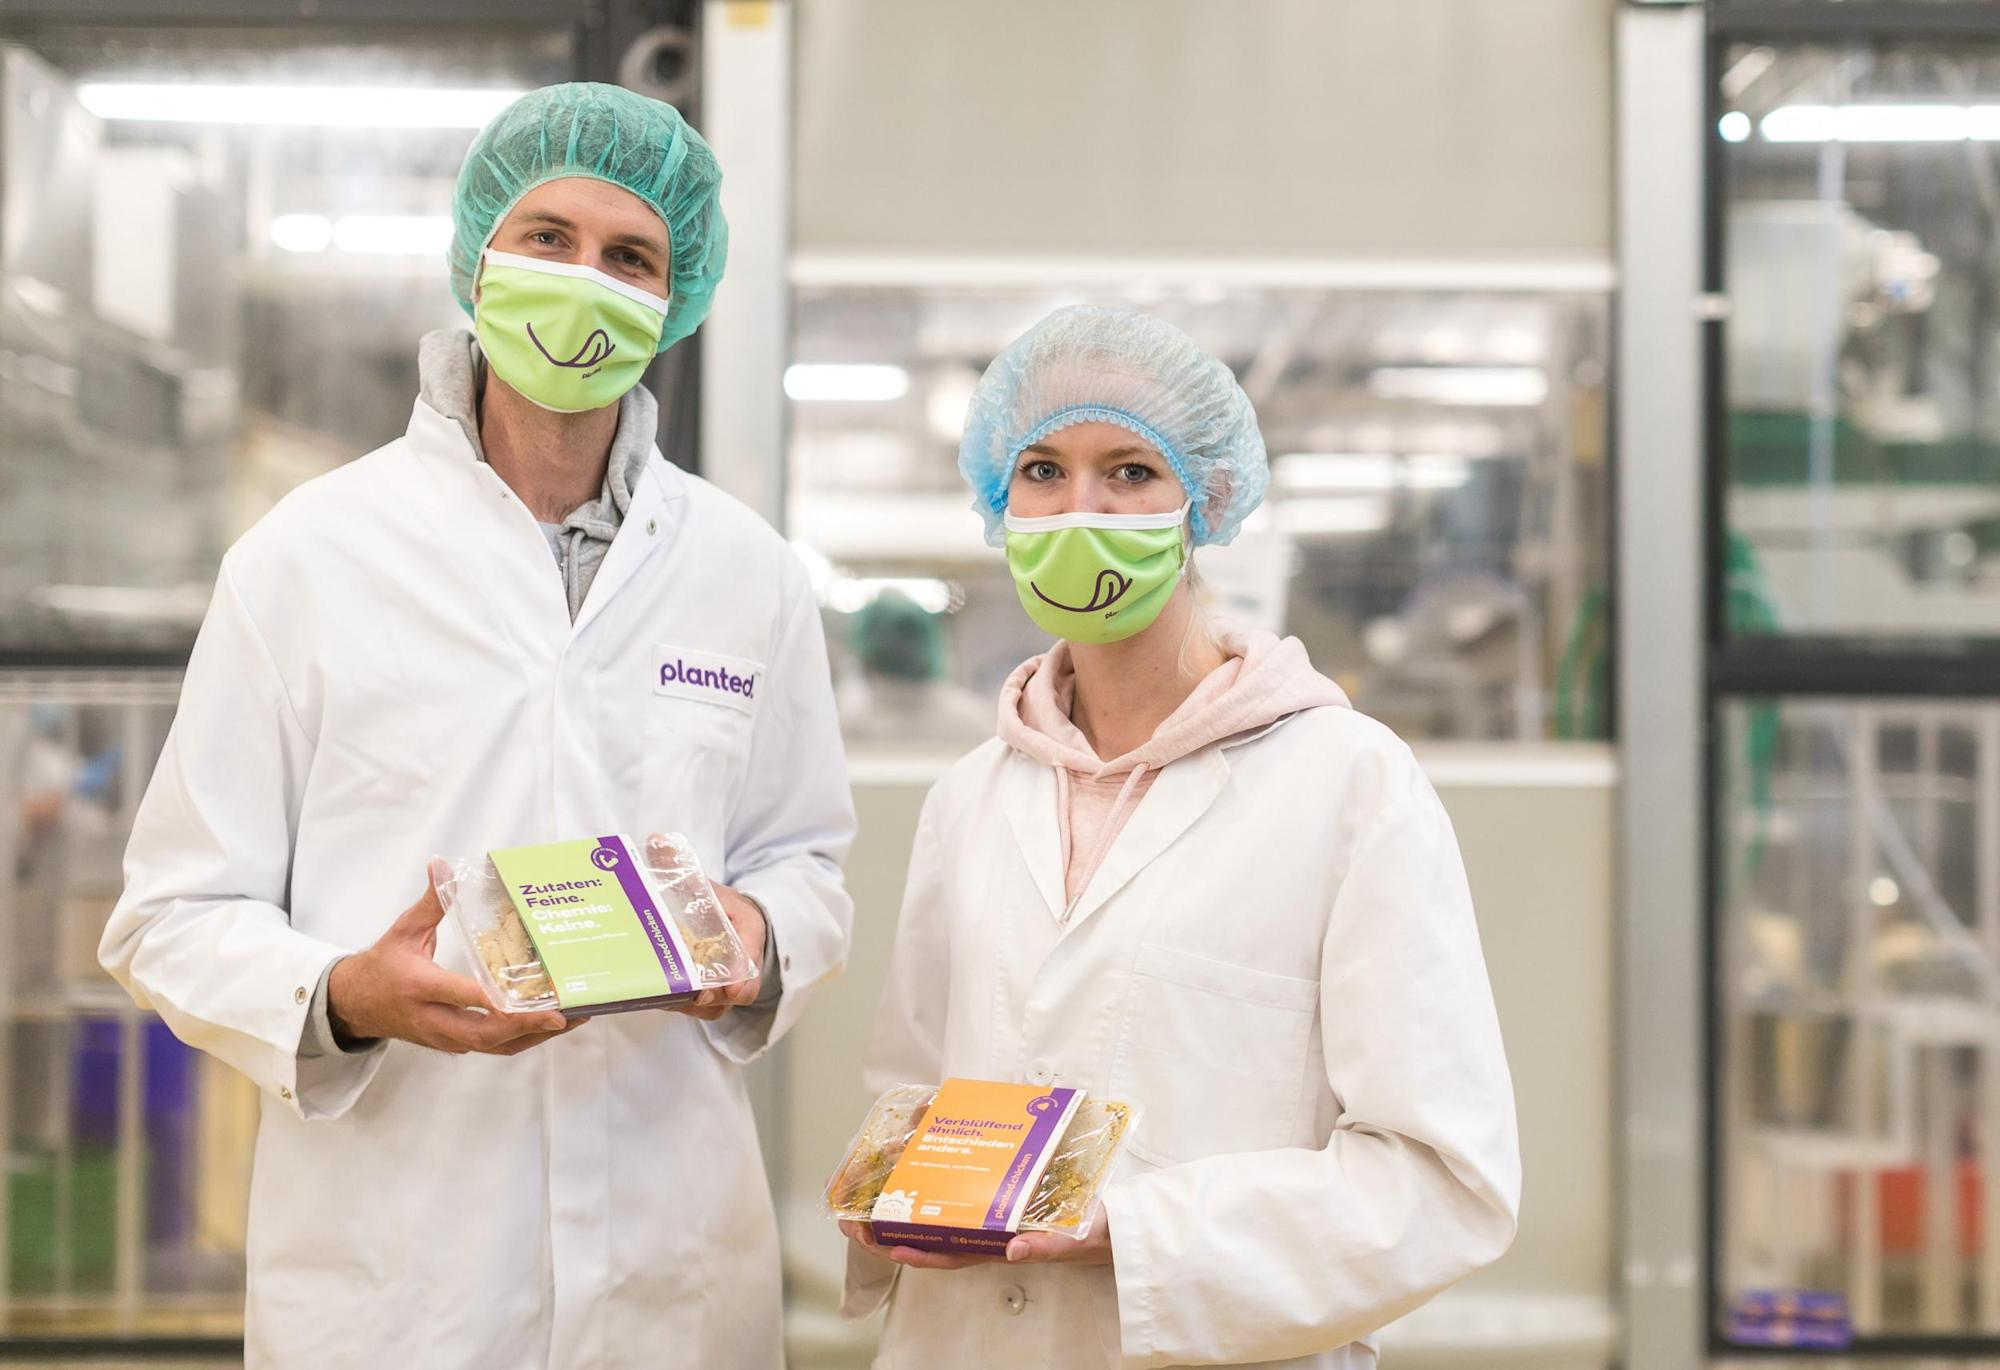 Swiss maker of meat alternatives Planted will expand and diversify with $18M Series A